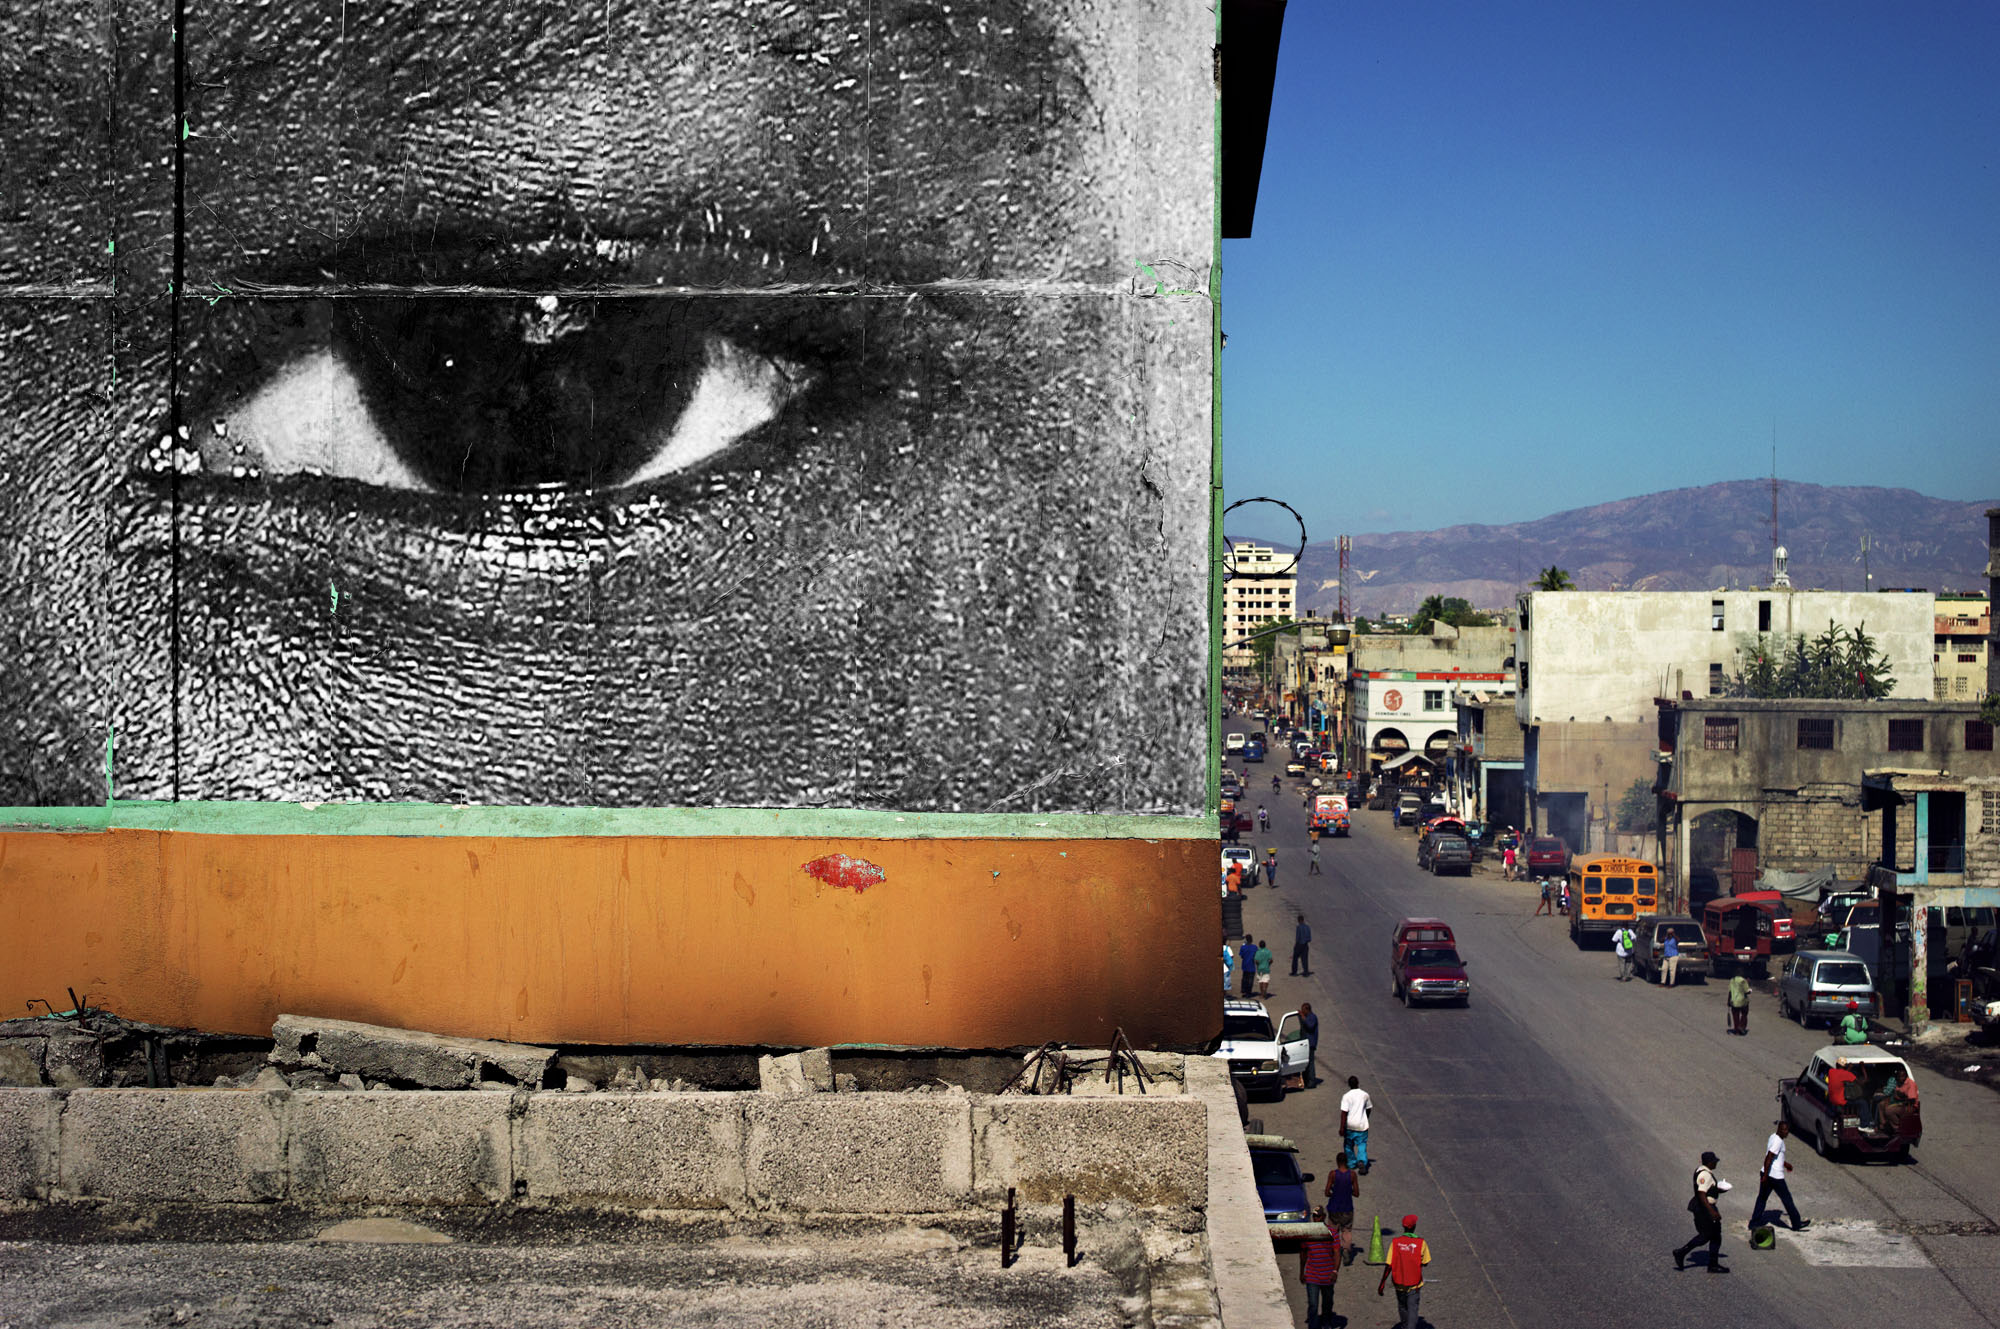 Haiti,_Close_Up,_2012_C_JR_JR-ART